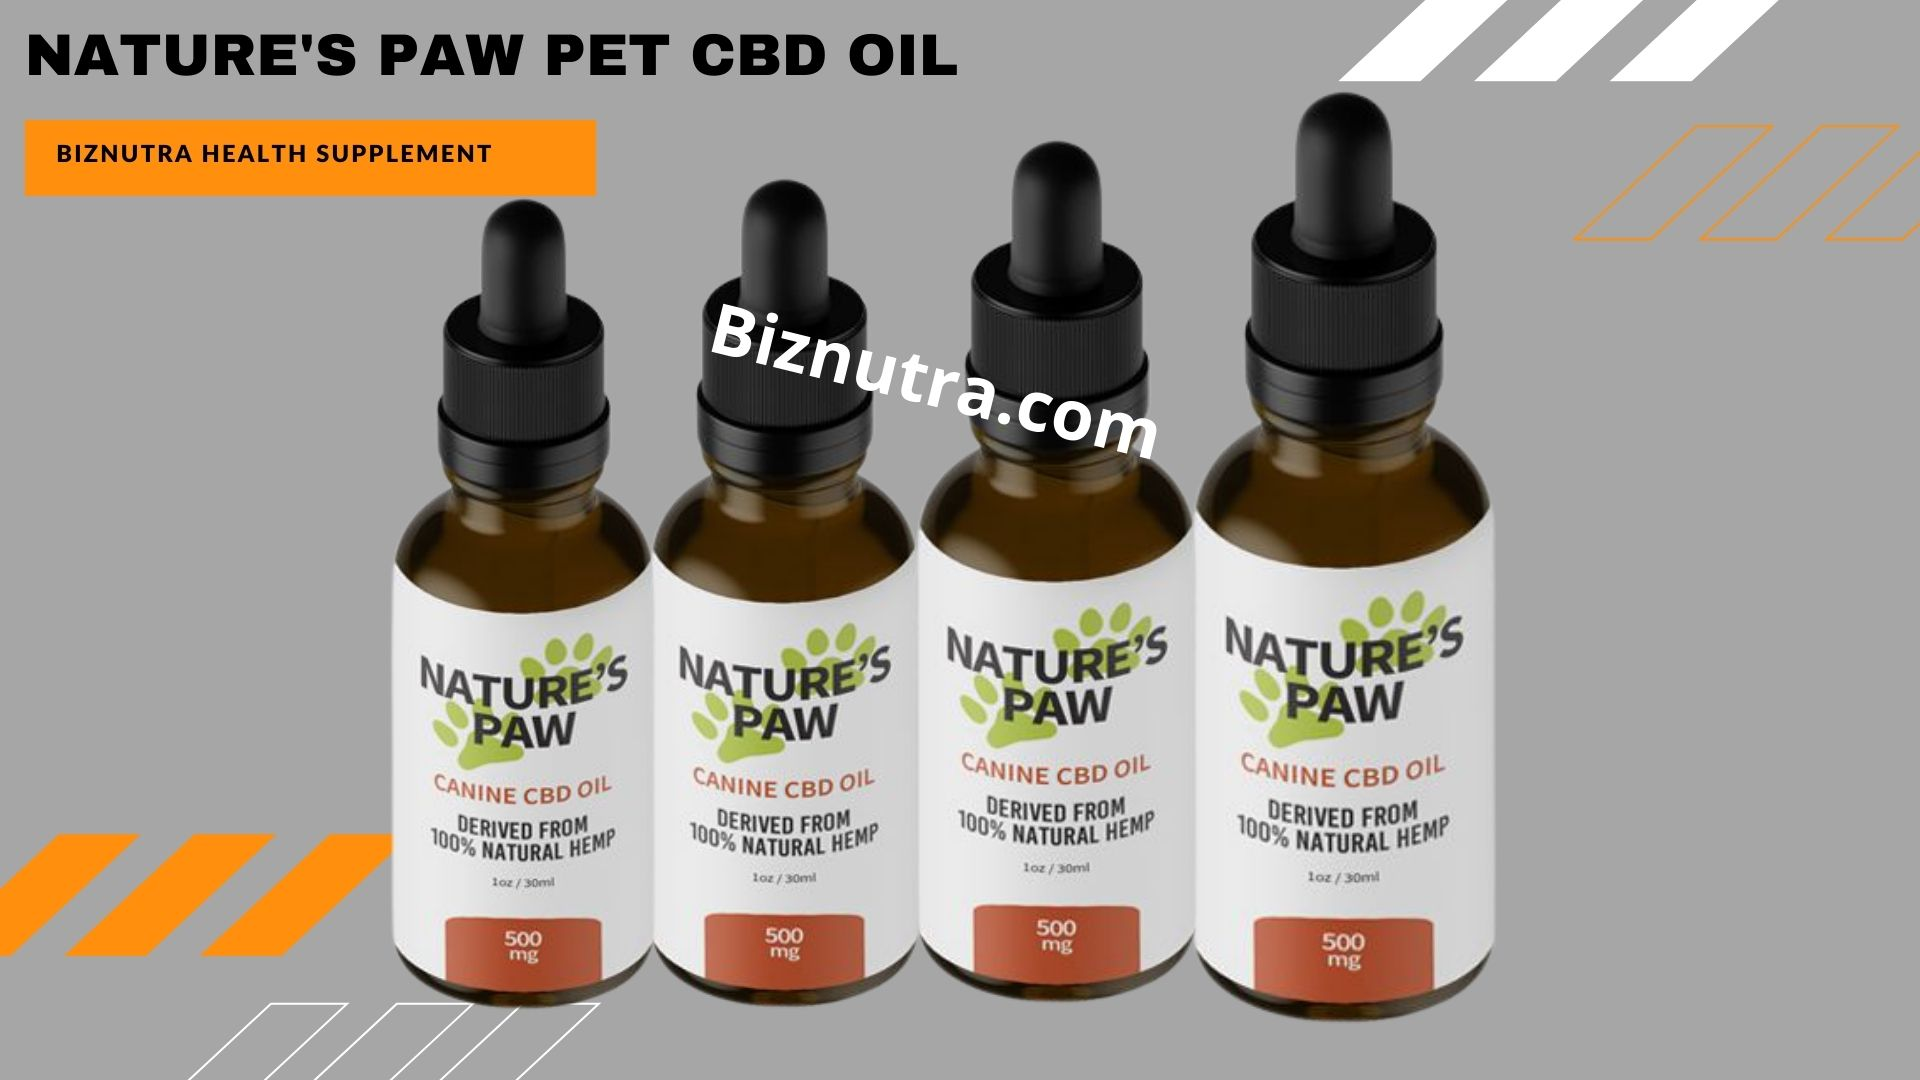 Nature's Paw Pet CBD Oil [Pros & Cons] #1 CBD Oil Does It Work Or Not?